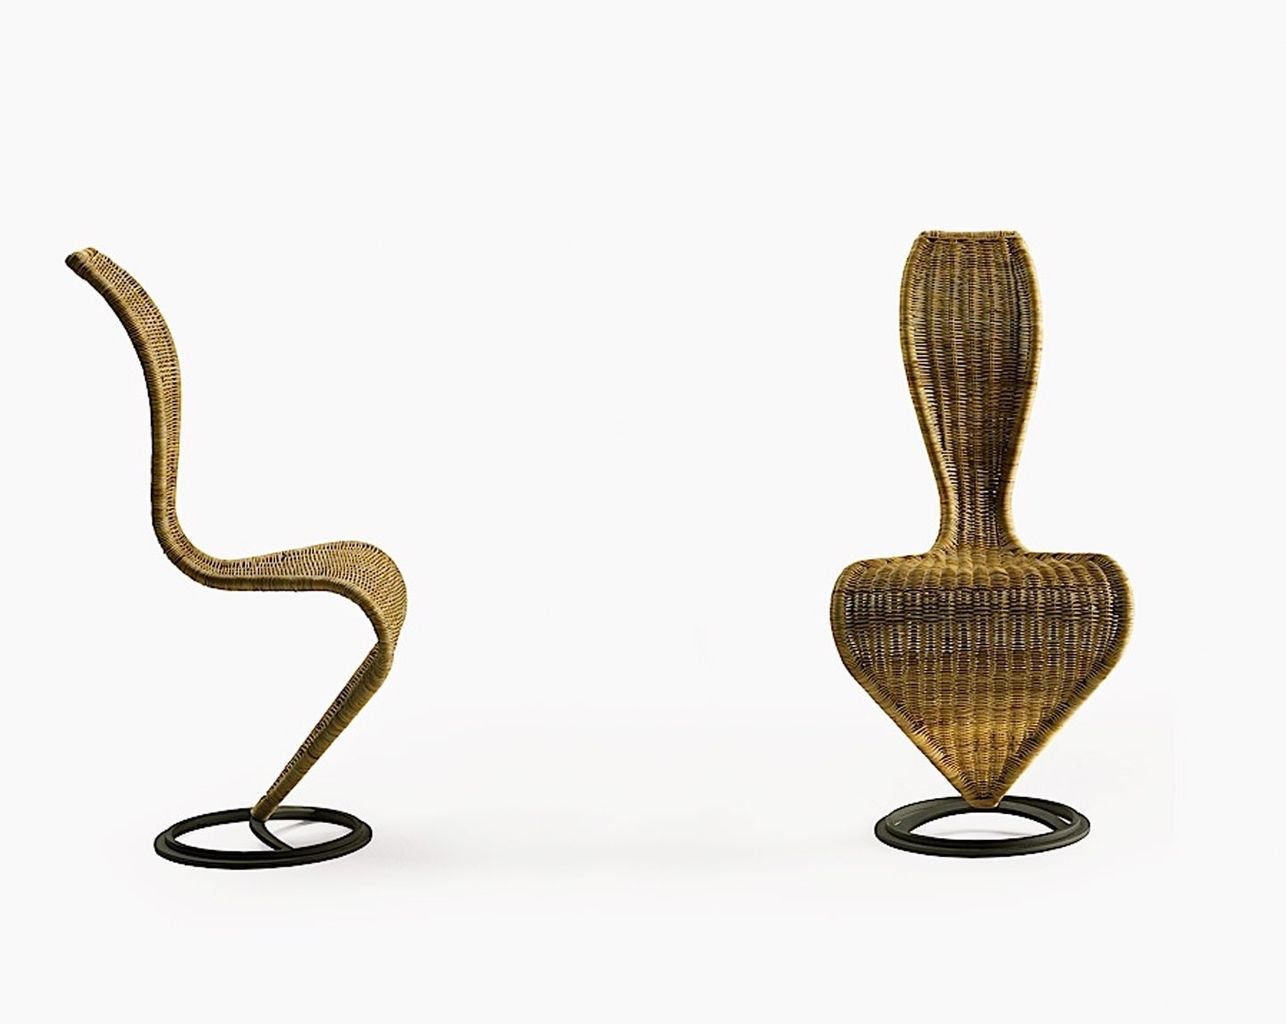 Merveilleux S Chair, By Tom Dixon   ), Tunisia. This Is The Only Wicker Chair That I  Actually Like. It Resembles Those Old Paintings Of Etruscan Noble Women, ...